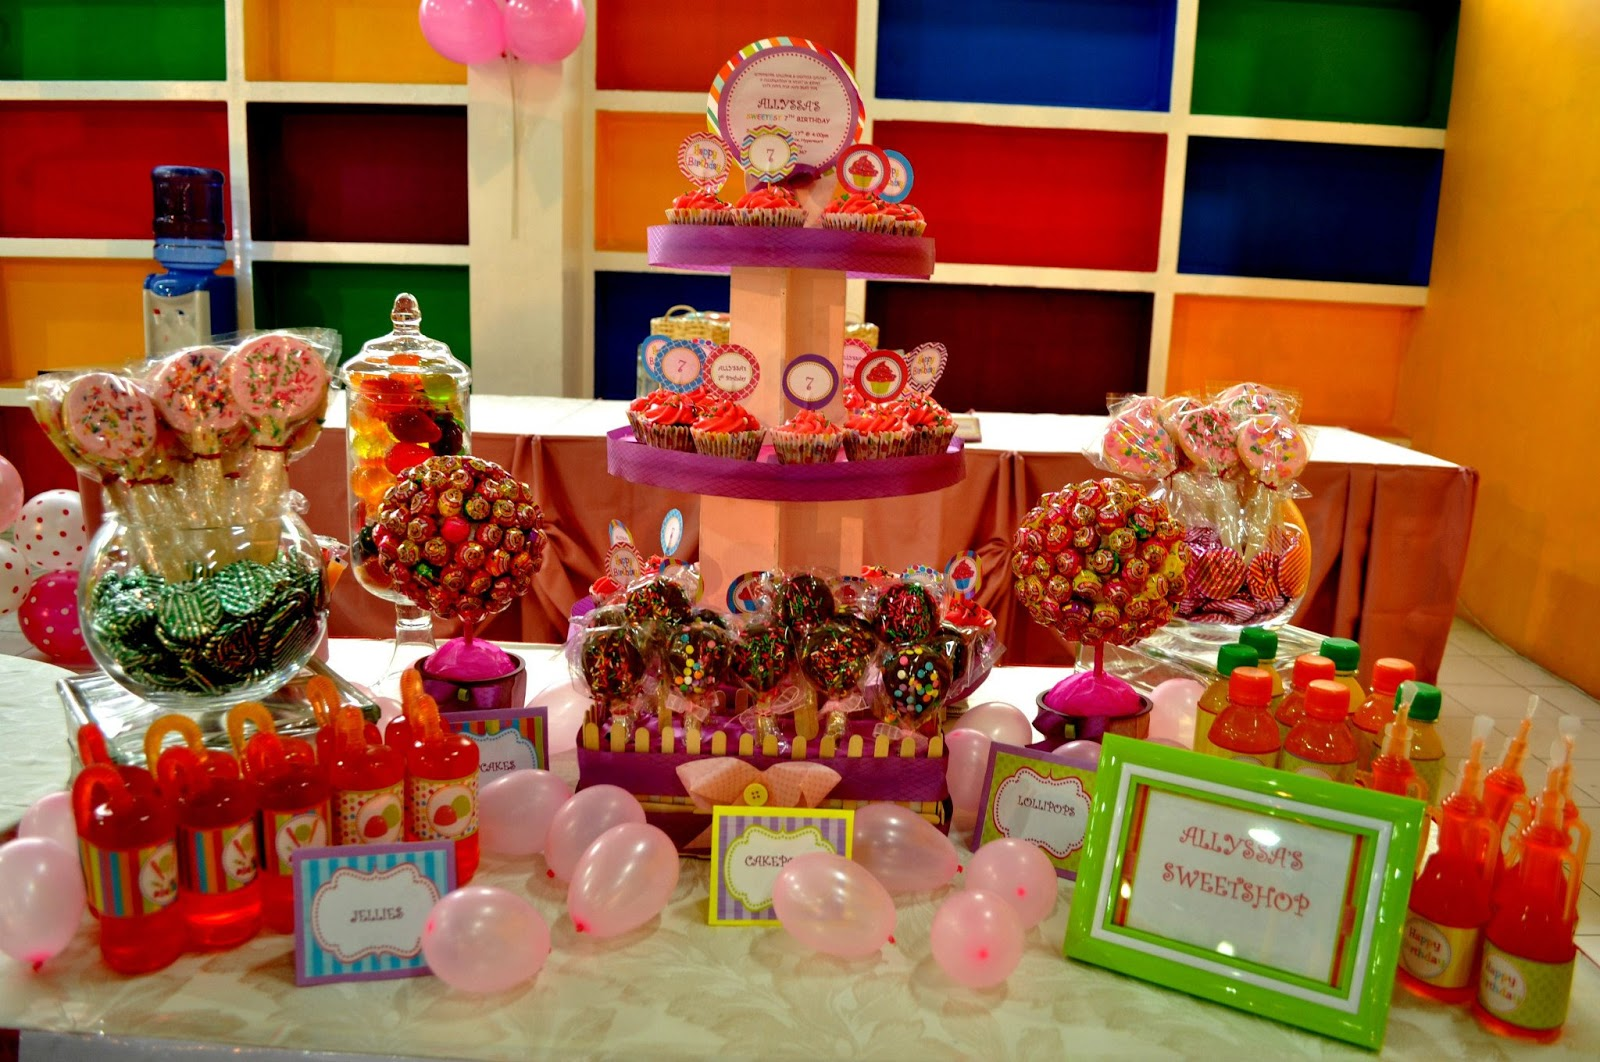 Artsy craftsy me candyland themed party for allyssa - Candyland party table decorations ...